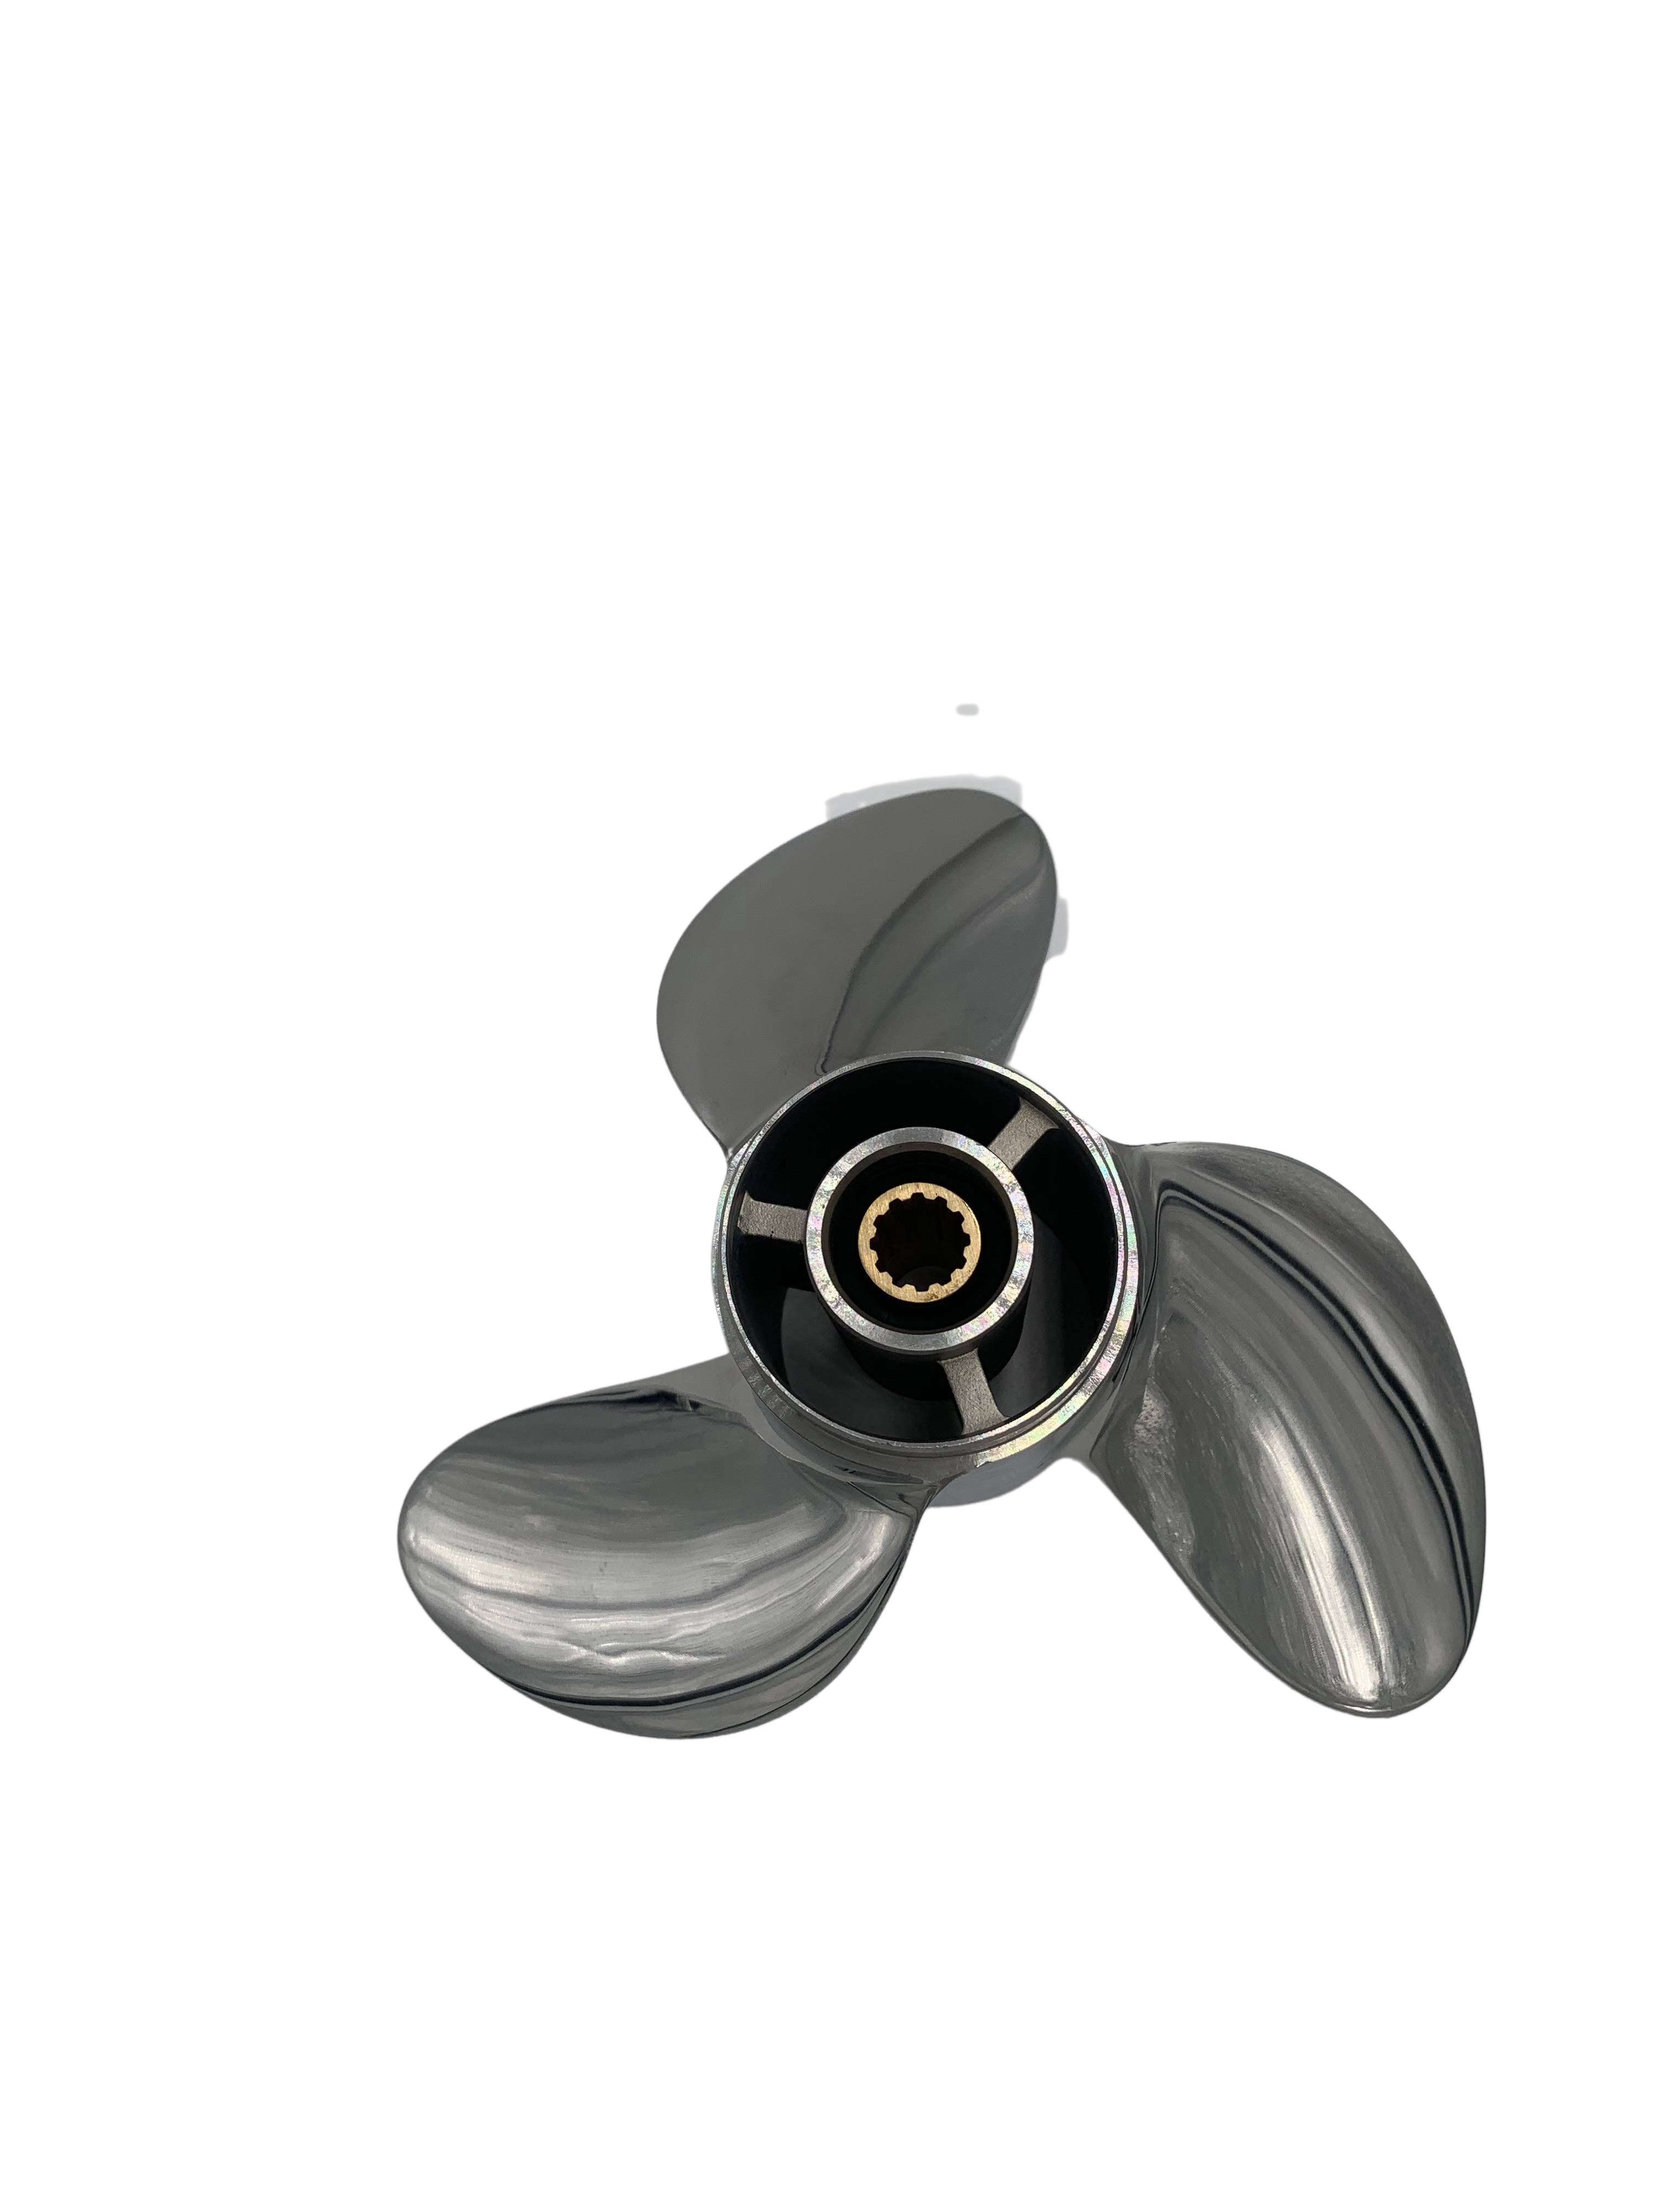 Boat Propeller 7.8x8 for Mercury 5HP-6HP 3 Blades Stainless Steel Prop SS 12 Tooth RH OEM NO: 48-812950A02 7.8x8 enlarge